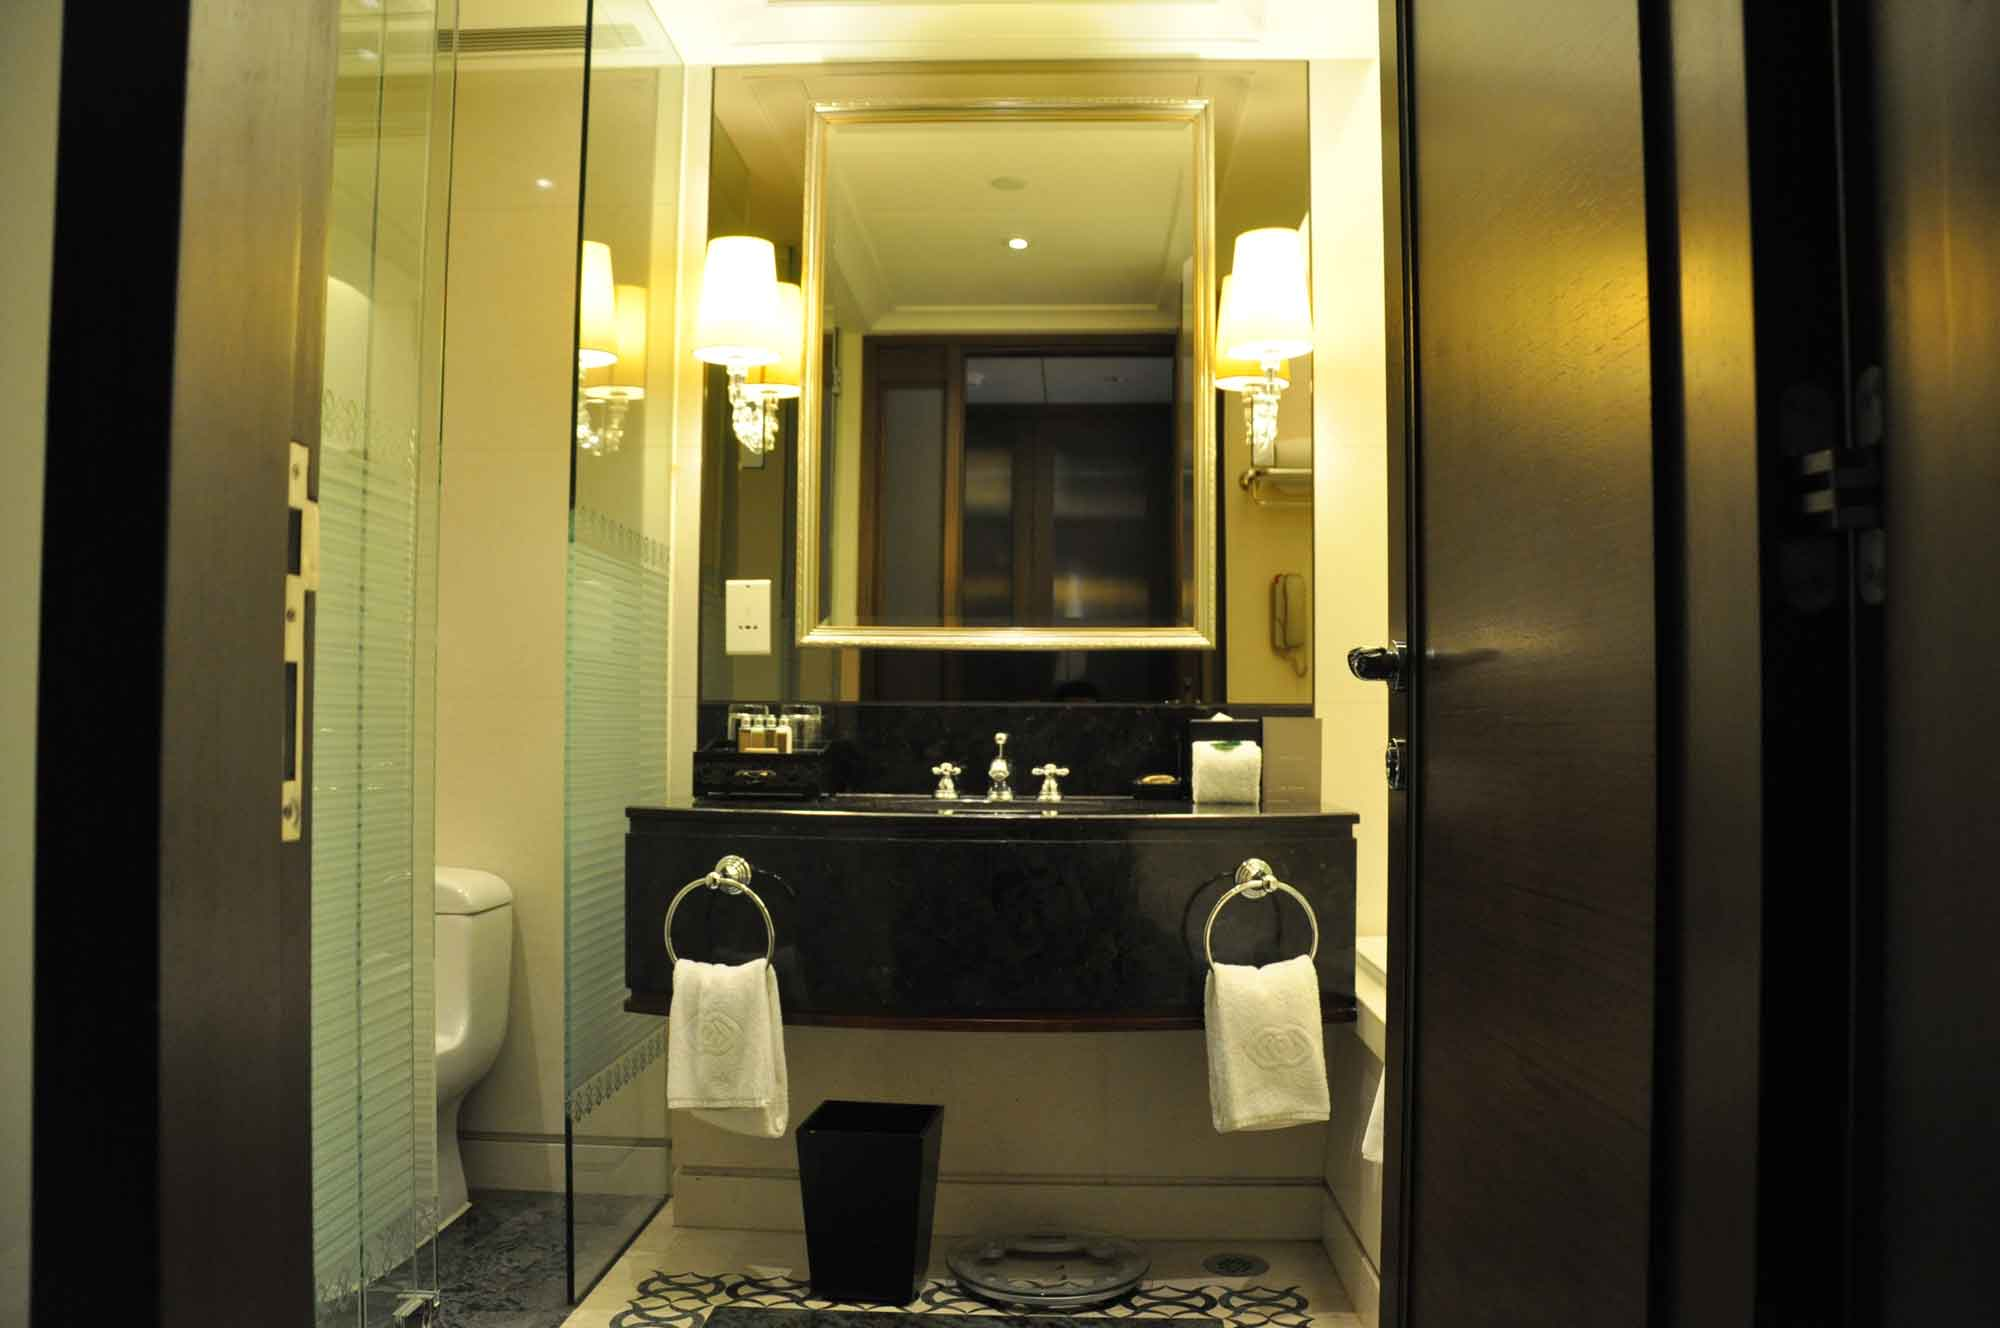 Sofitel Macau Superior Room bathroom